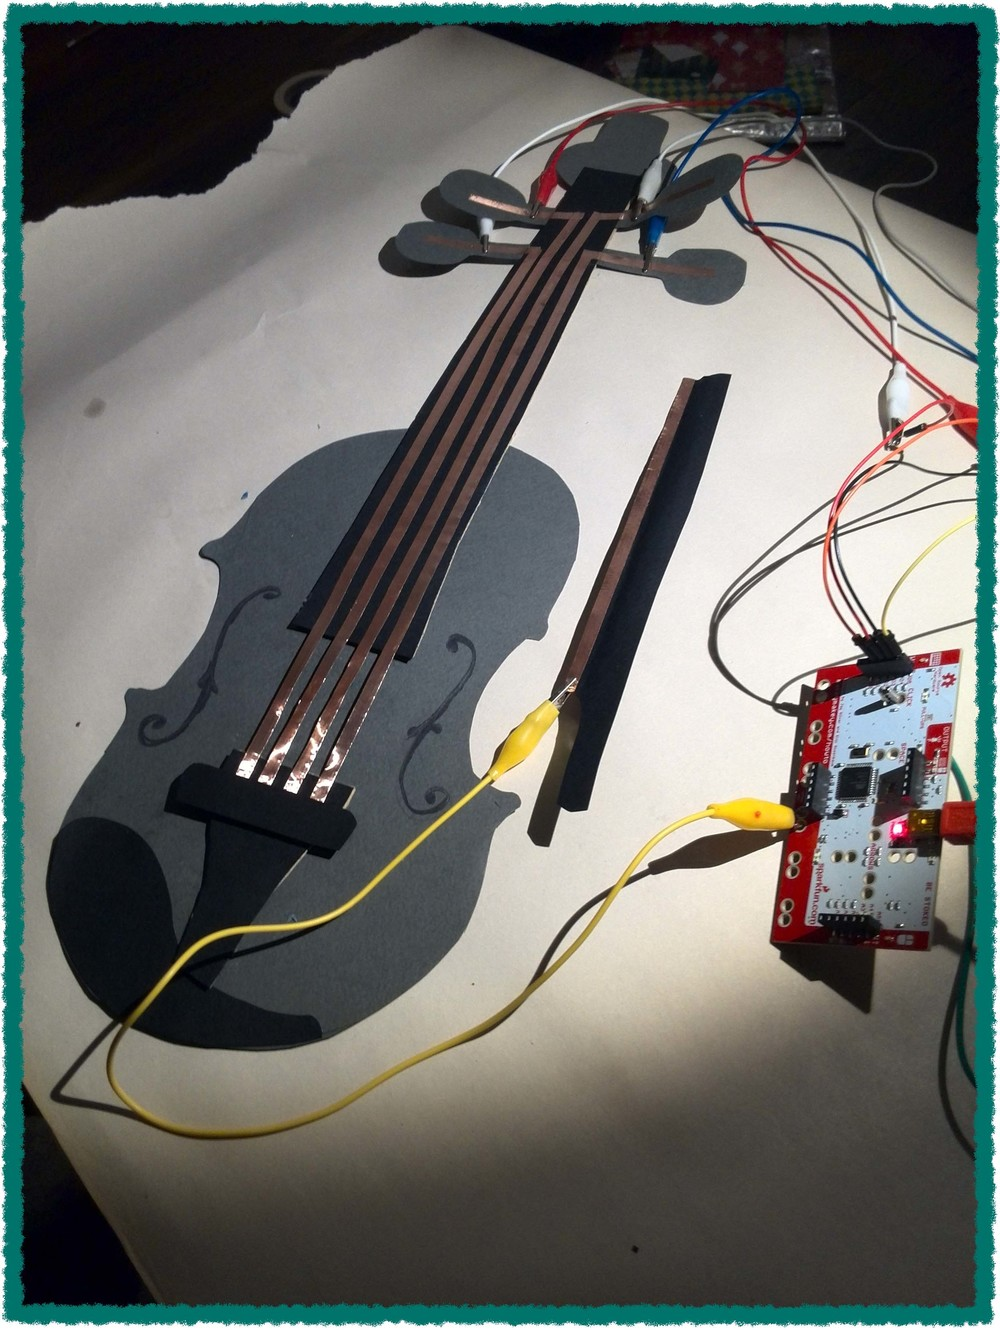 STEAM: Design, make and play your own musical instrument